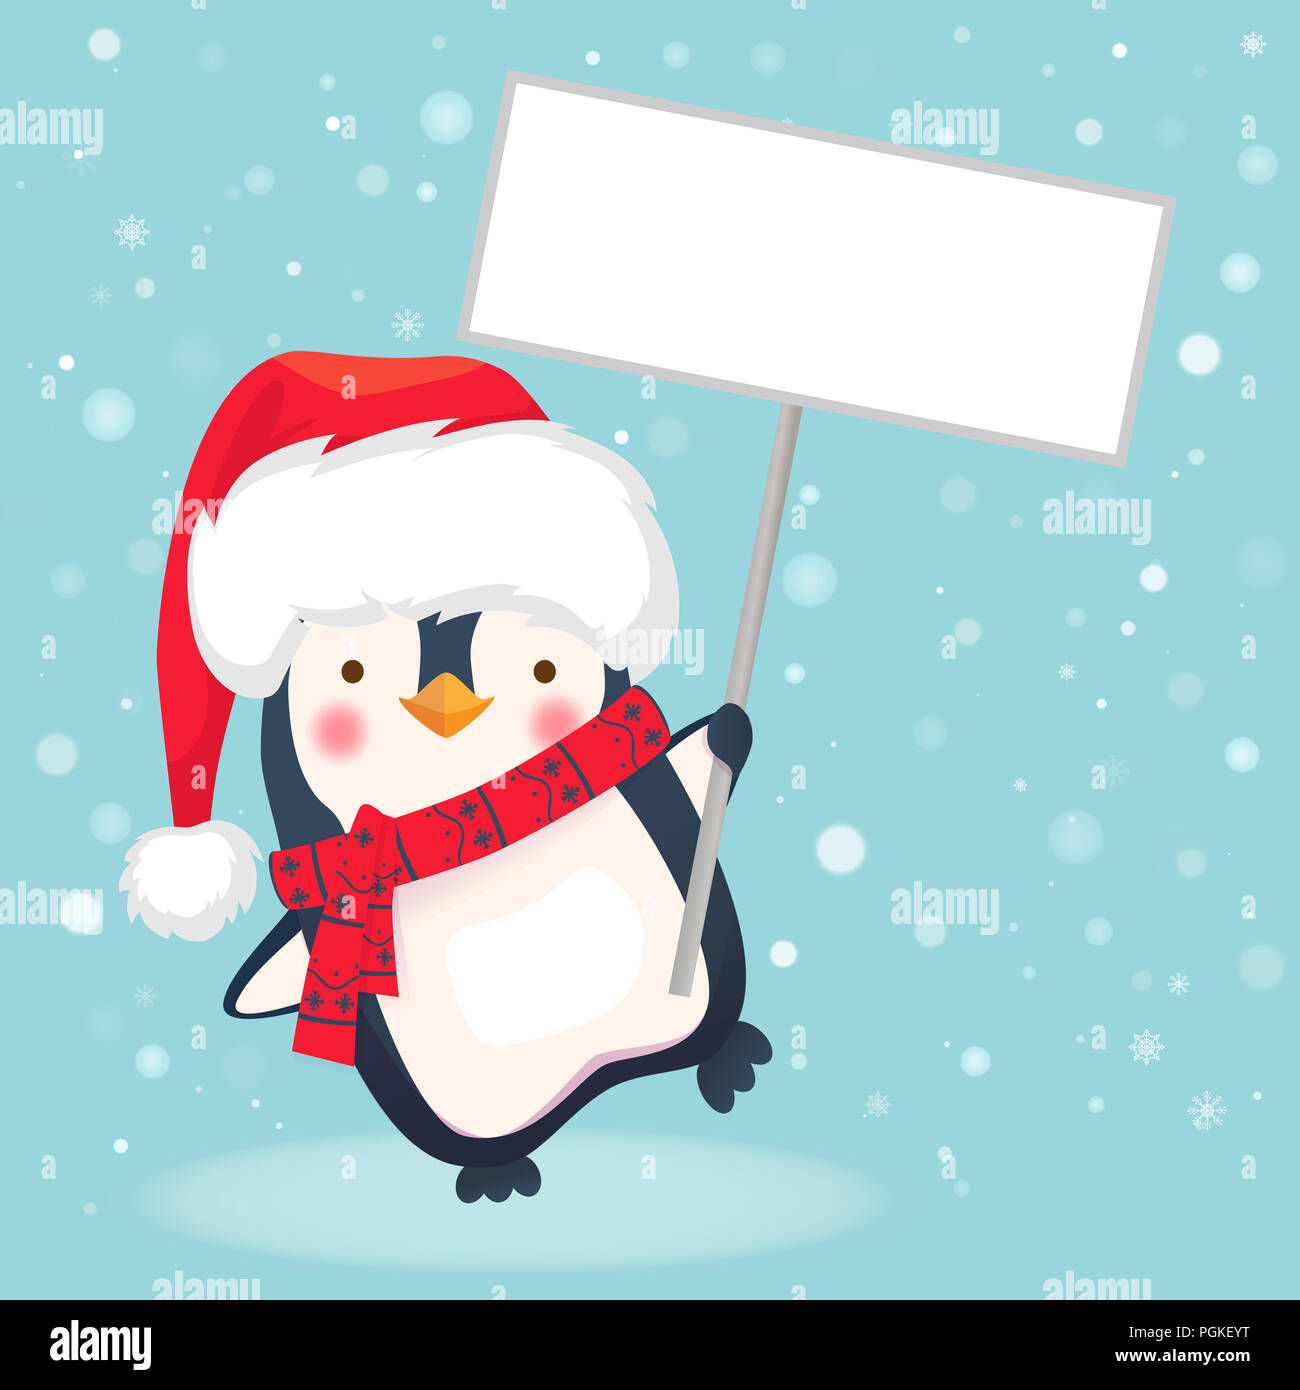 Cute Christmas Pictures.Cute Christmas Penguin With Santa Hat Holding Christmas Sign